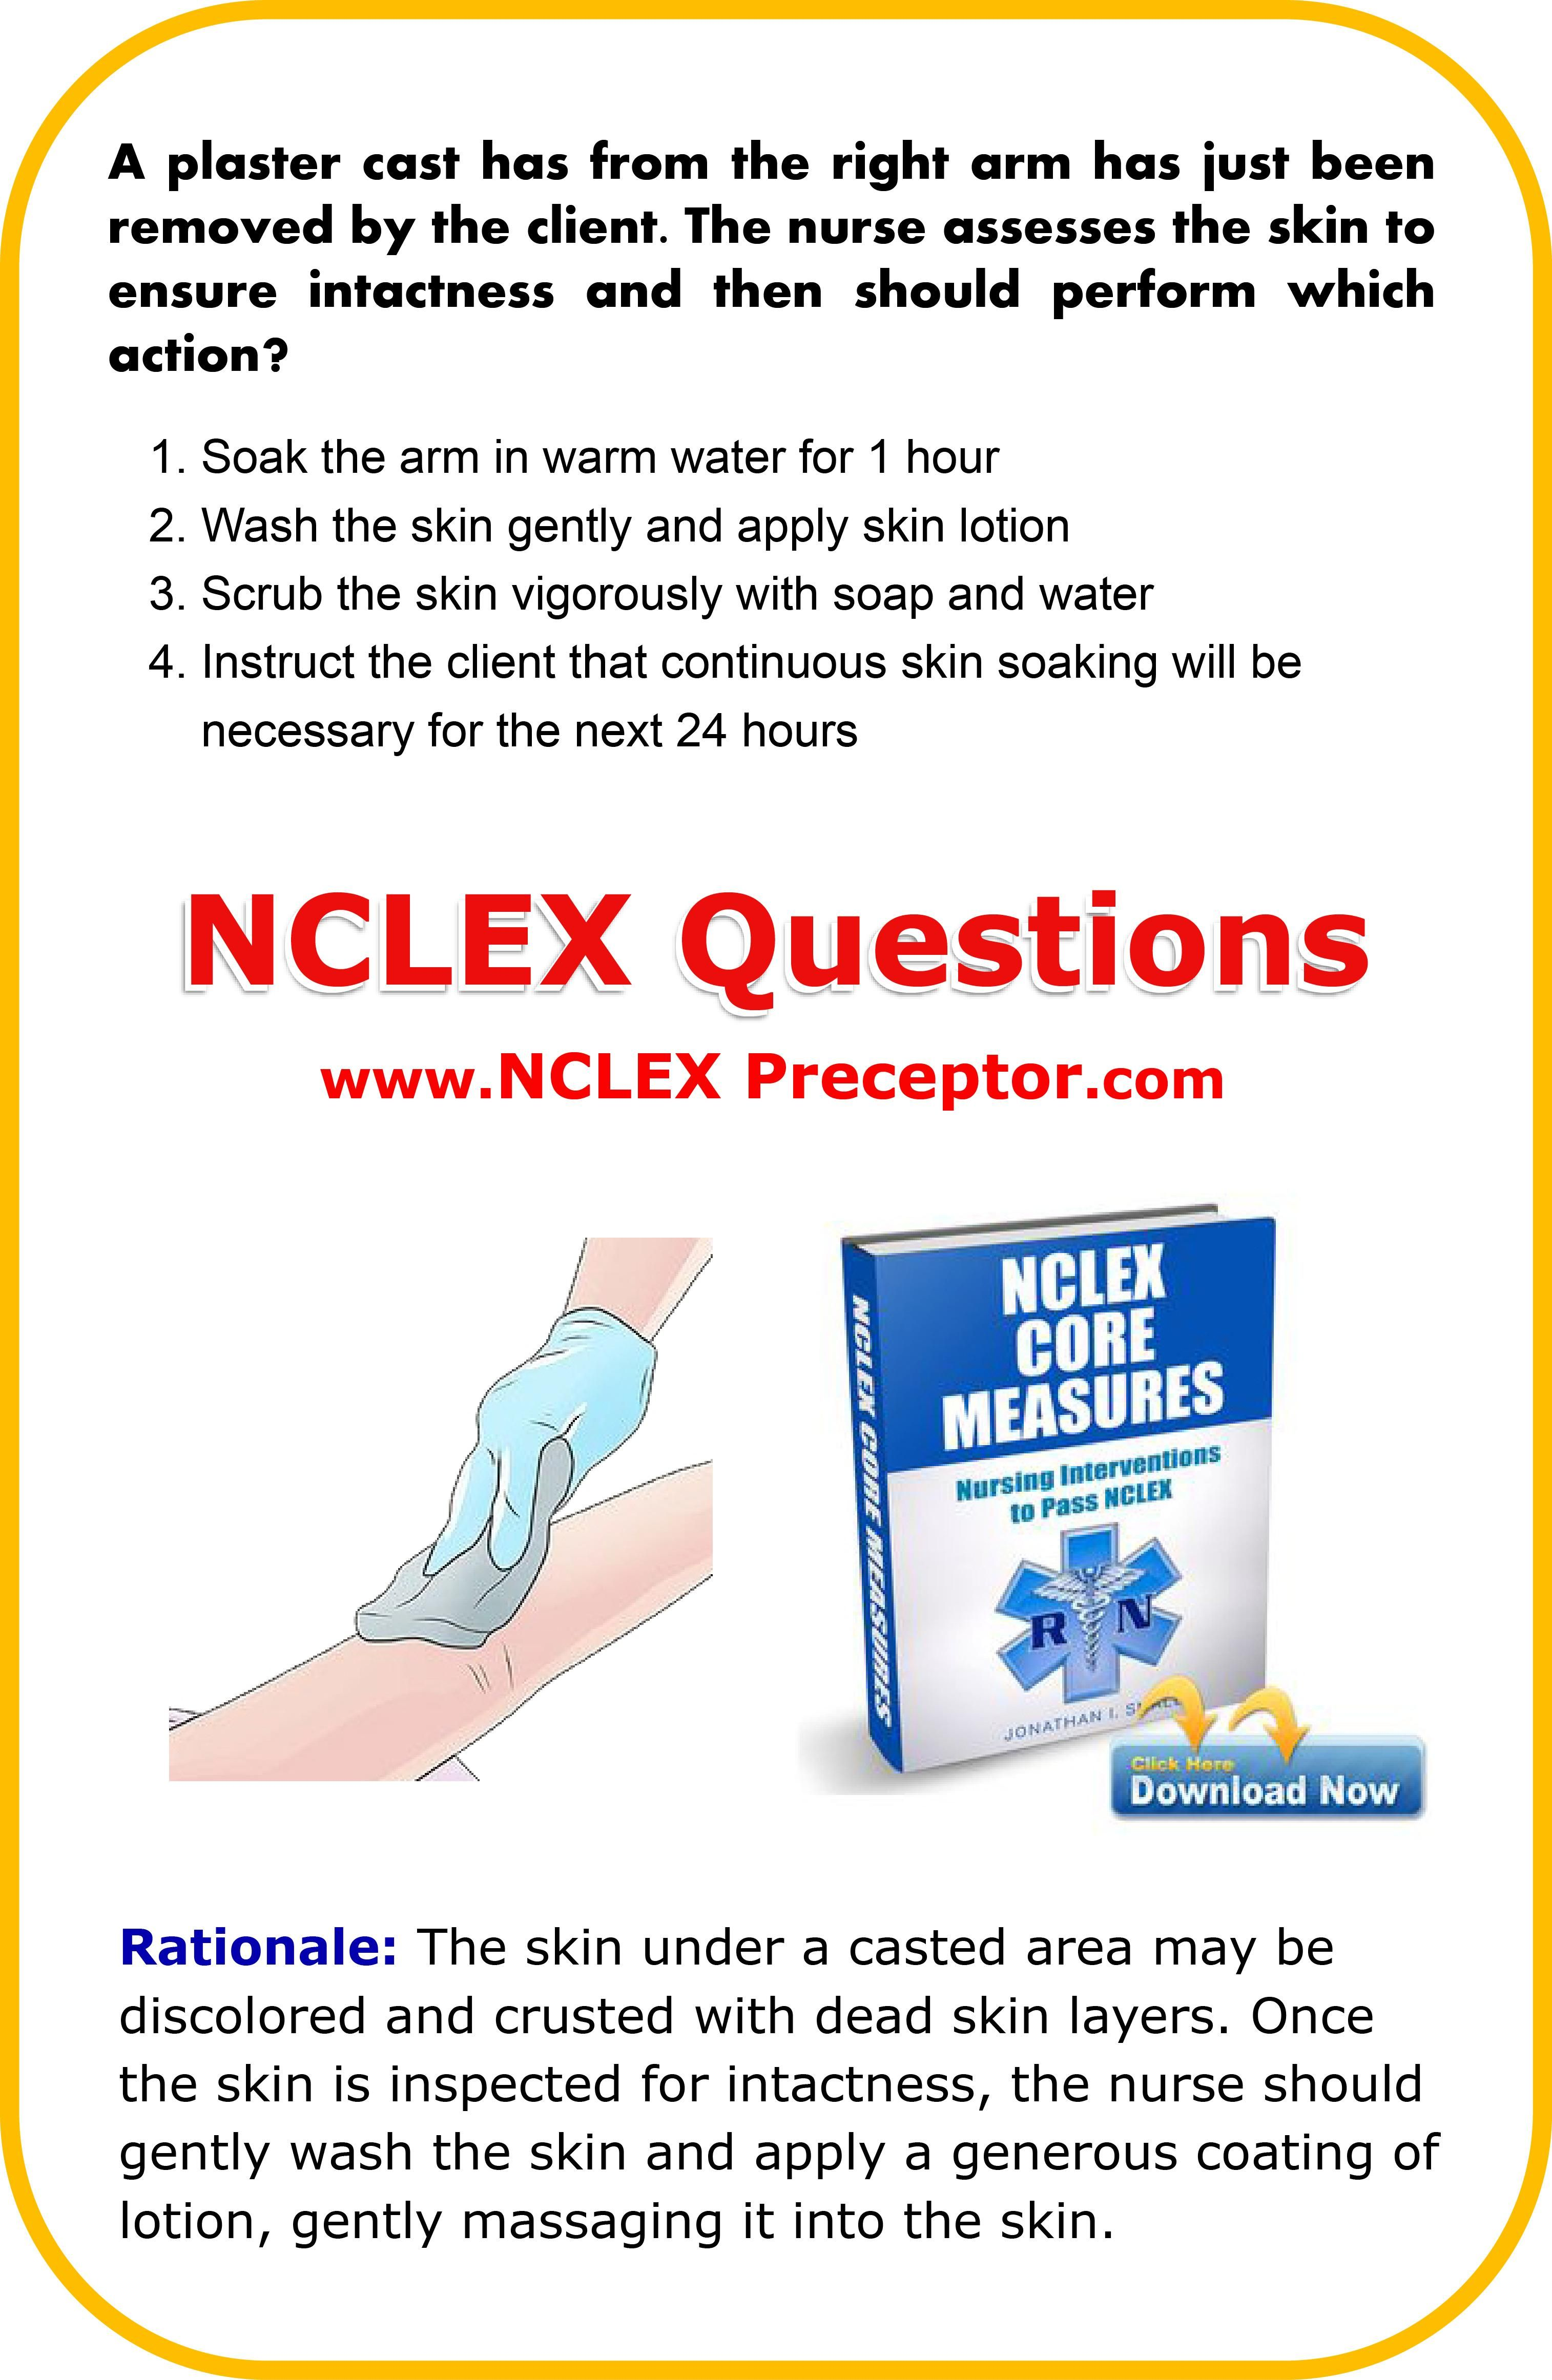 Free Practice Nclex Questions For Registered Nurses Get Nursing Tips To Give The Best